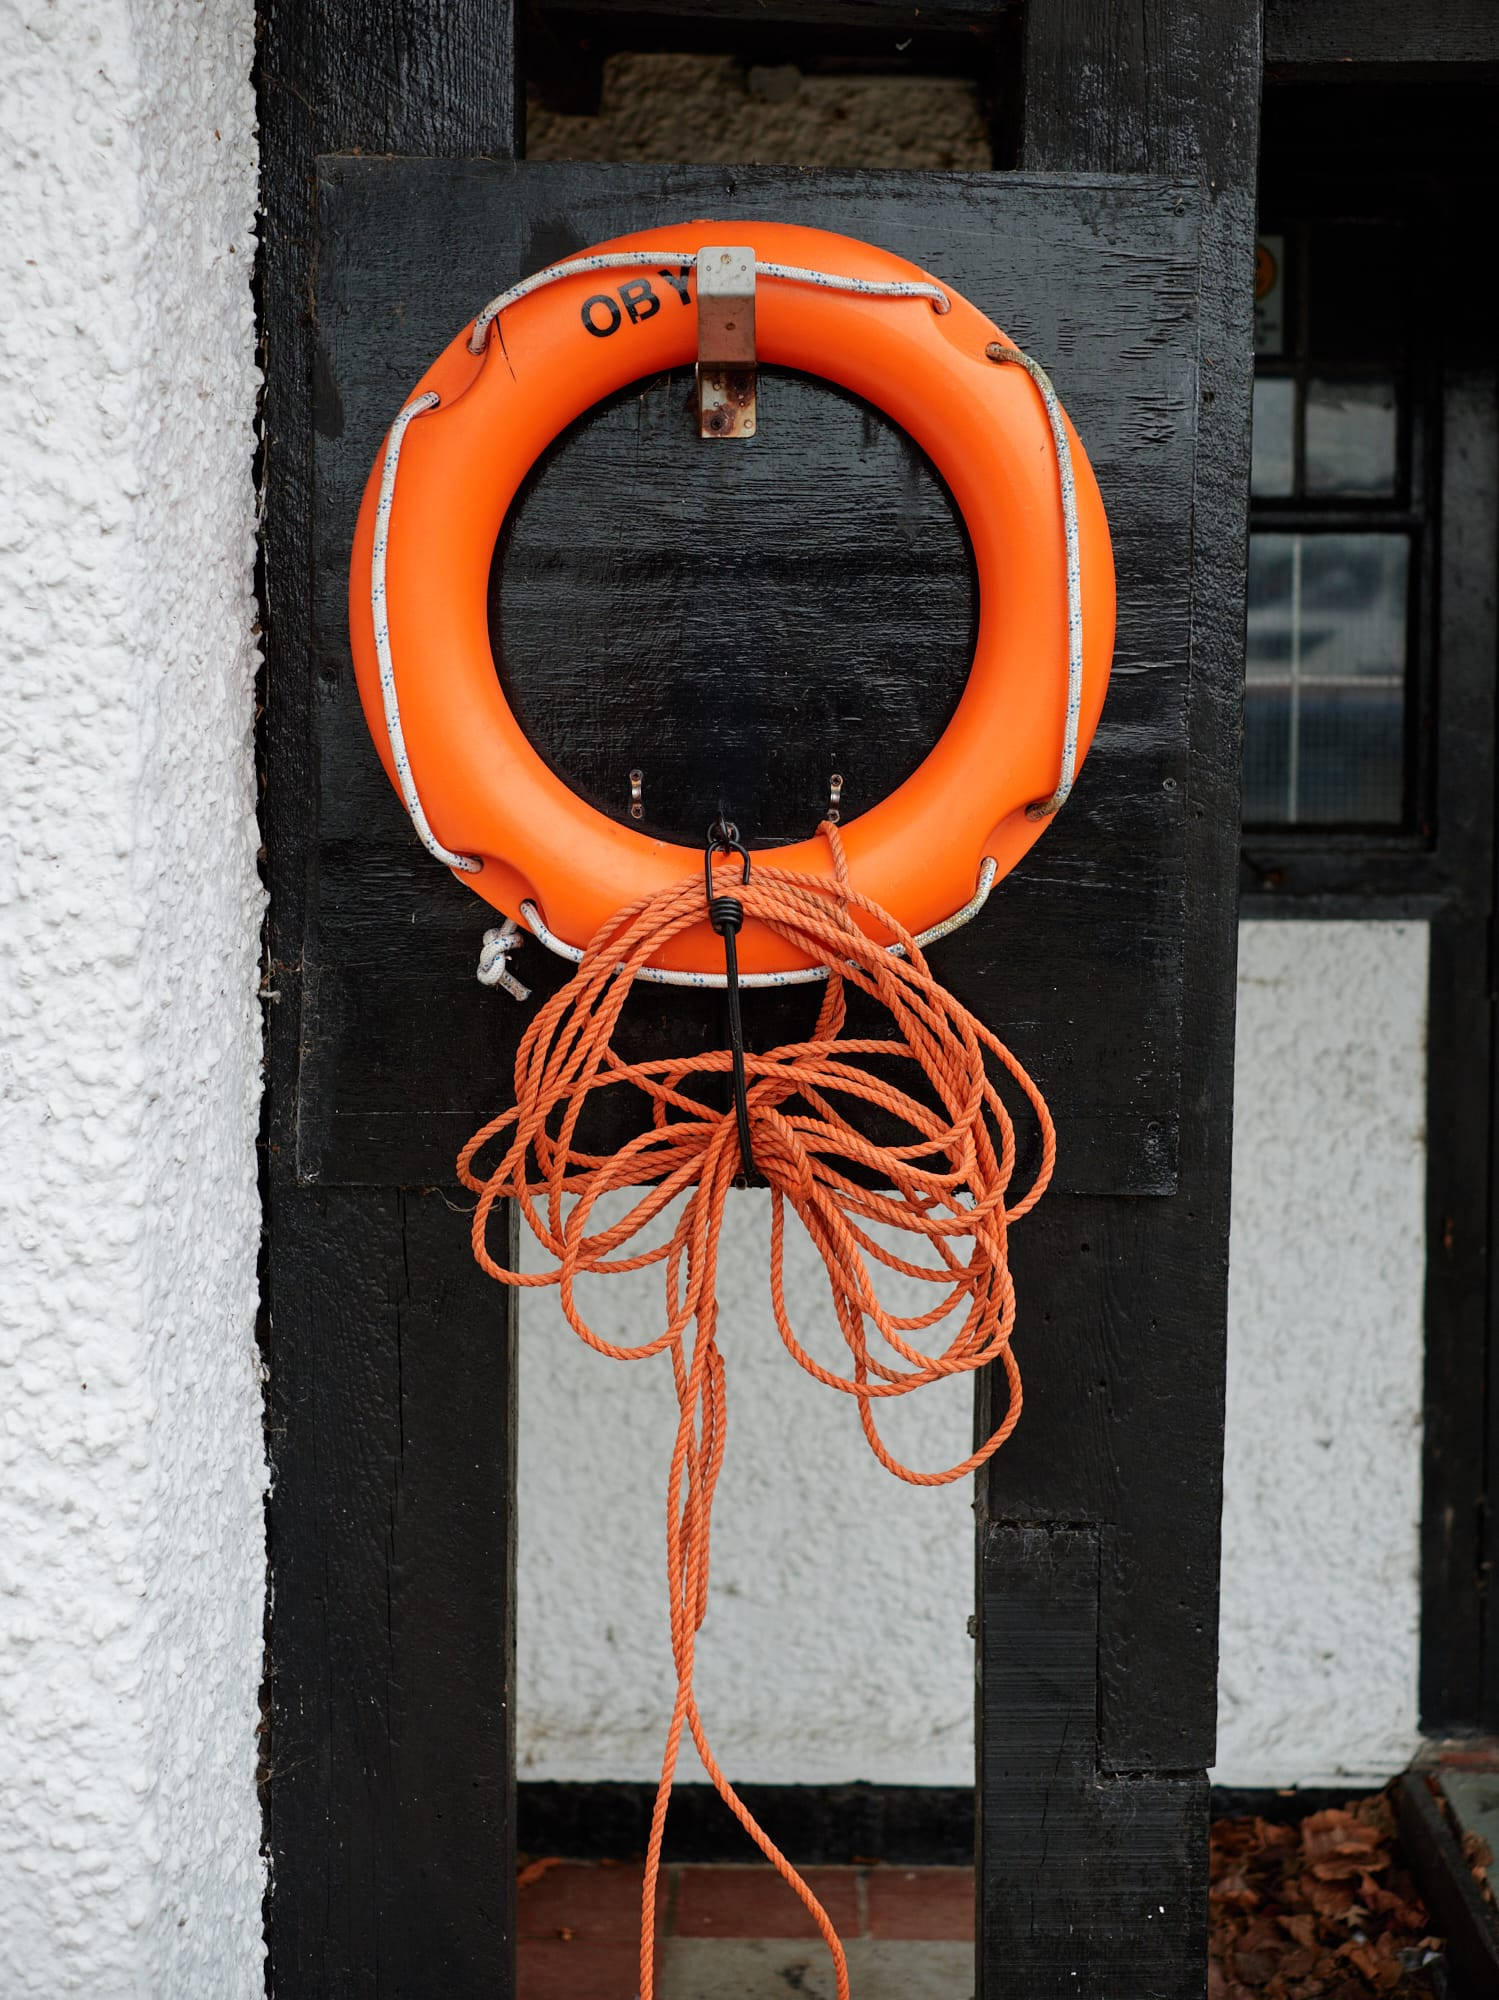 life ring on a hook